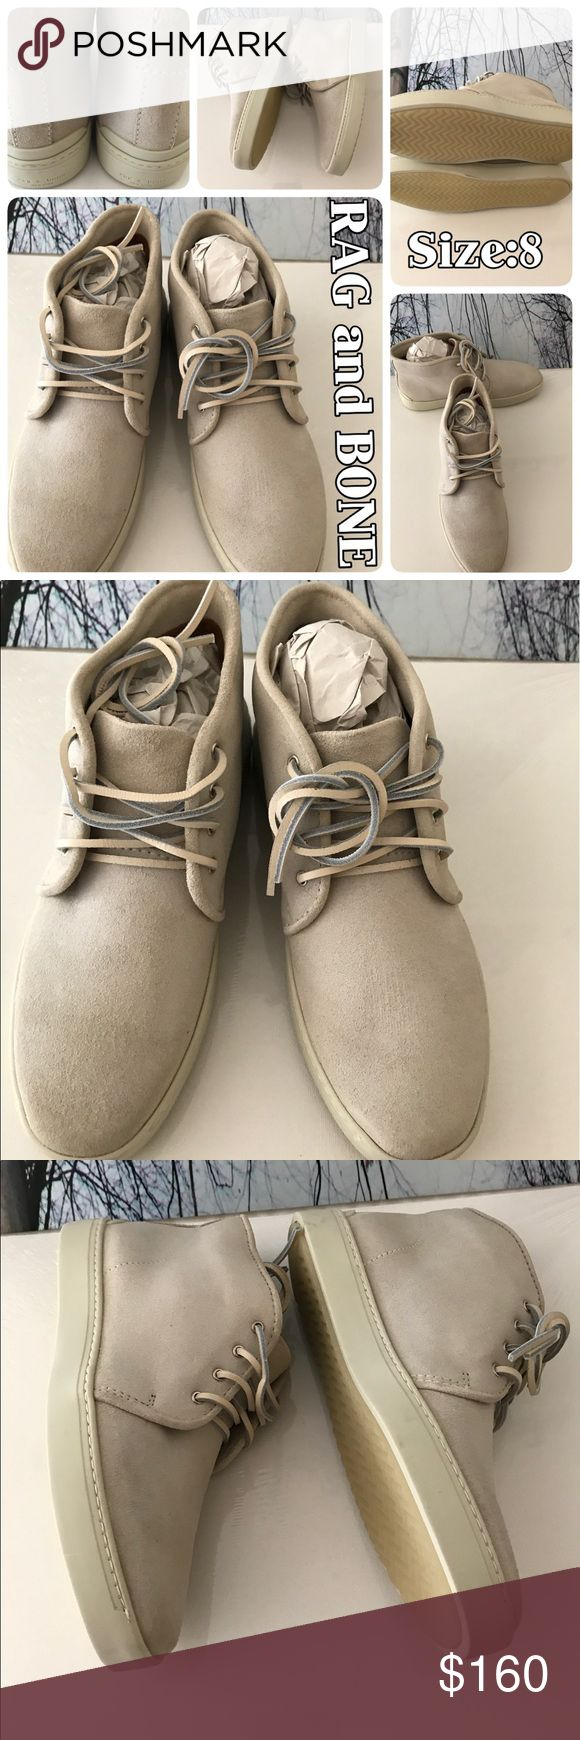 🇺🇸Authentic Chukkas NWT NWT - Authentic RAG and BONE TYNE Chukka Sneakers in brand new condition. Size:8 rag & bone Shoes Chukka Boots